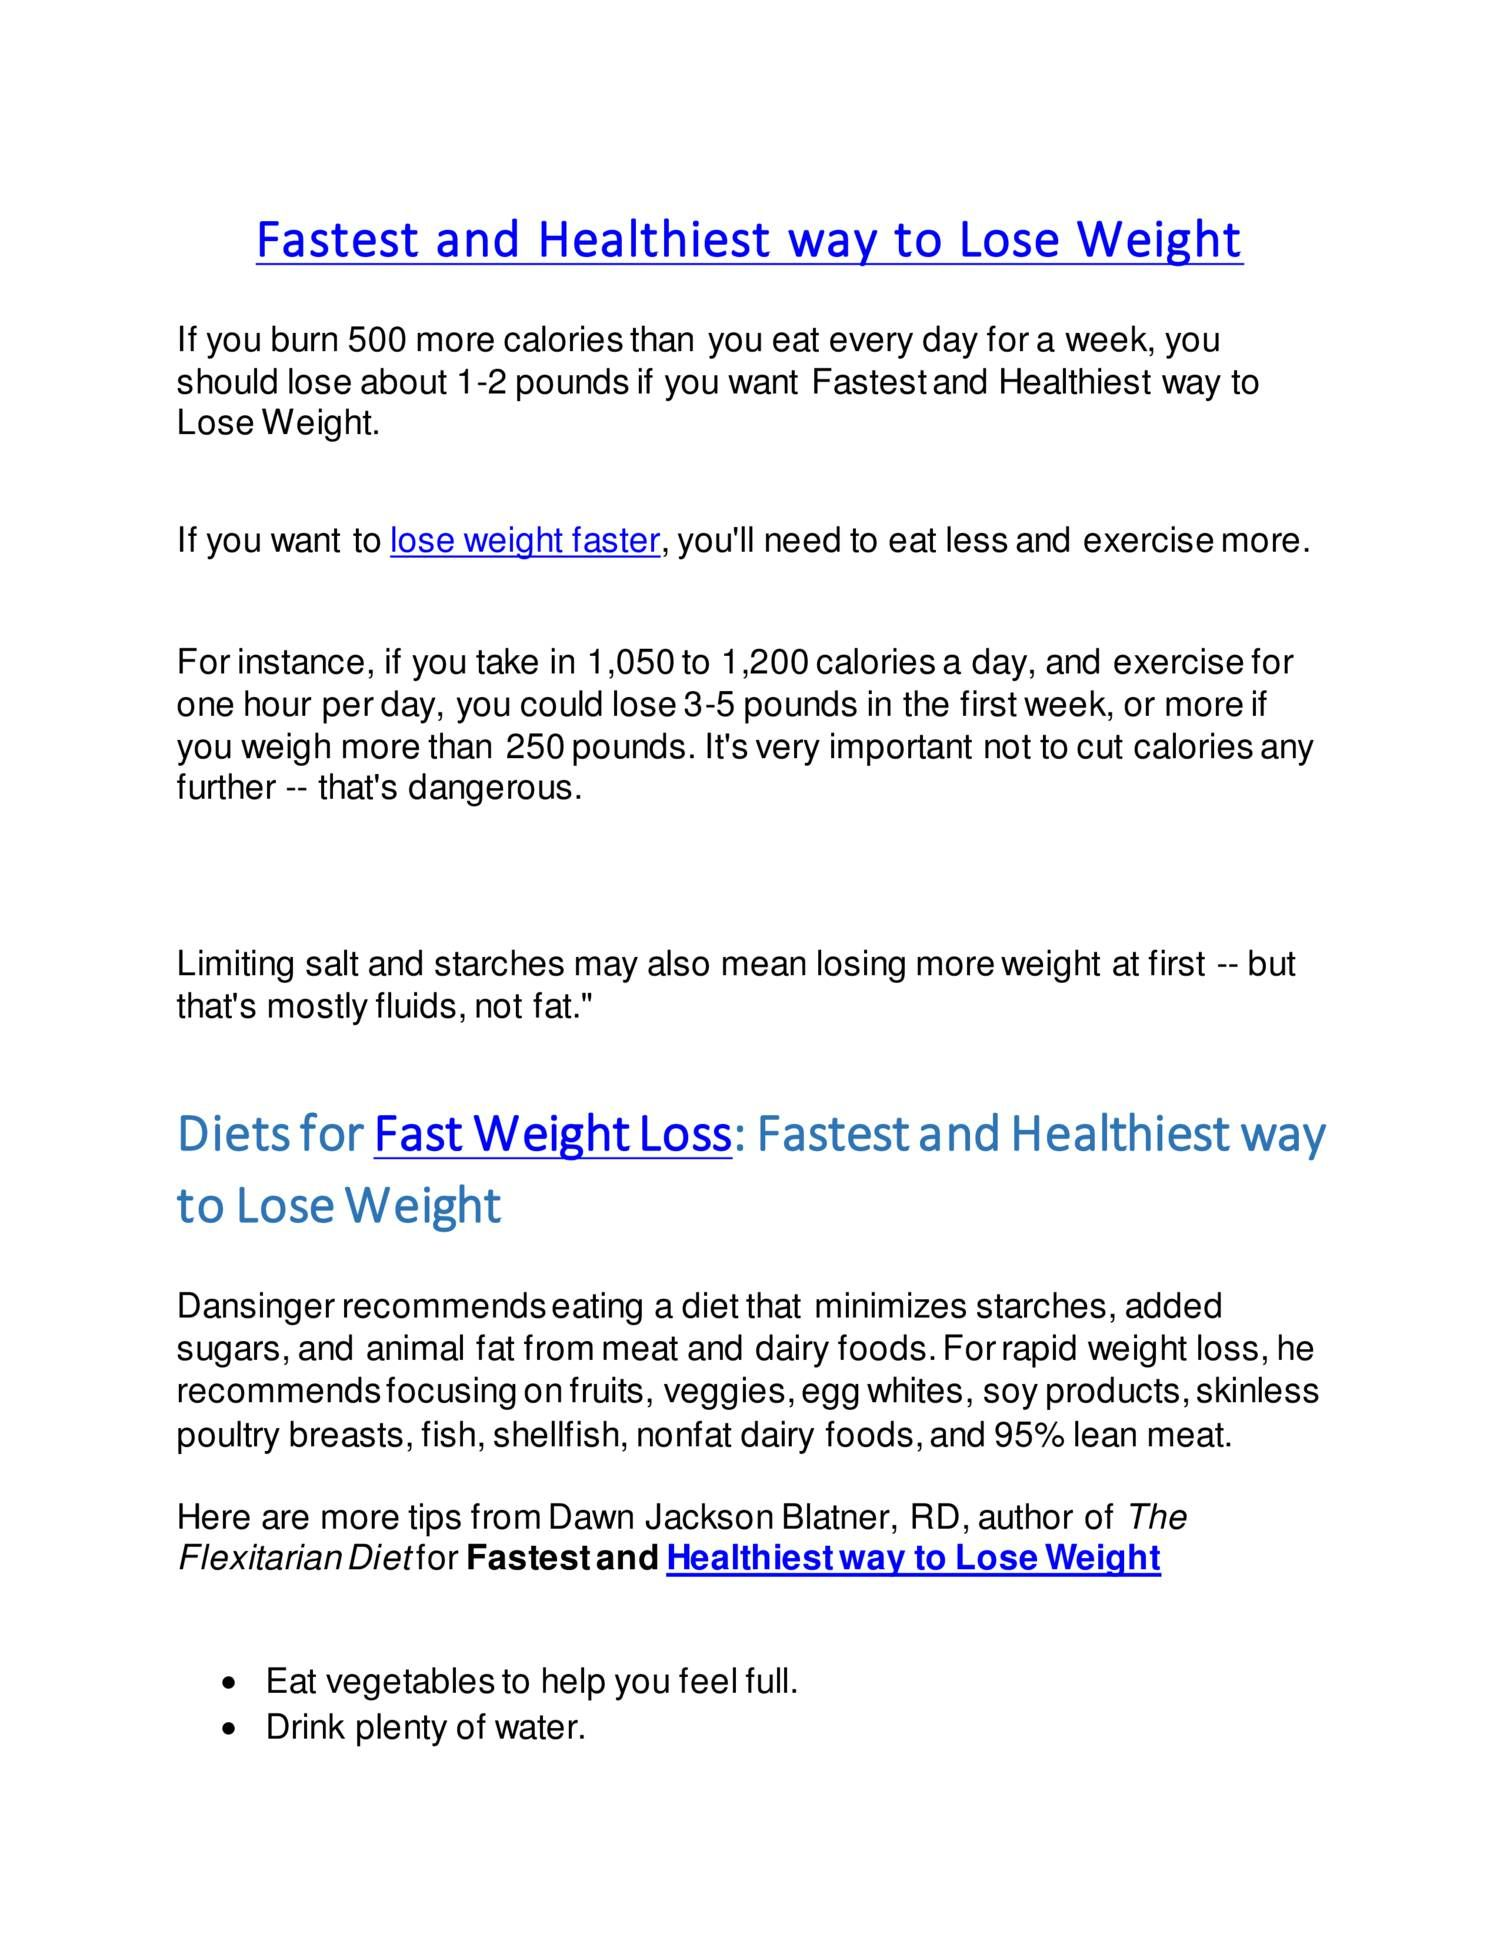 View and download fastest and healthiest way to lose weightpdf on view and download fastest and healthiest way to lose weightpdf on docdroid ccuart Choice Image